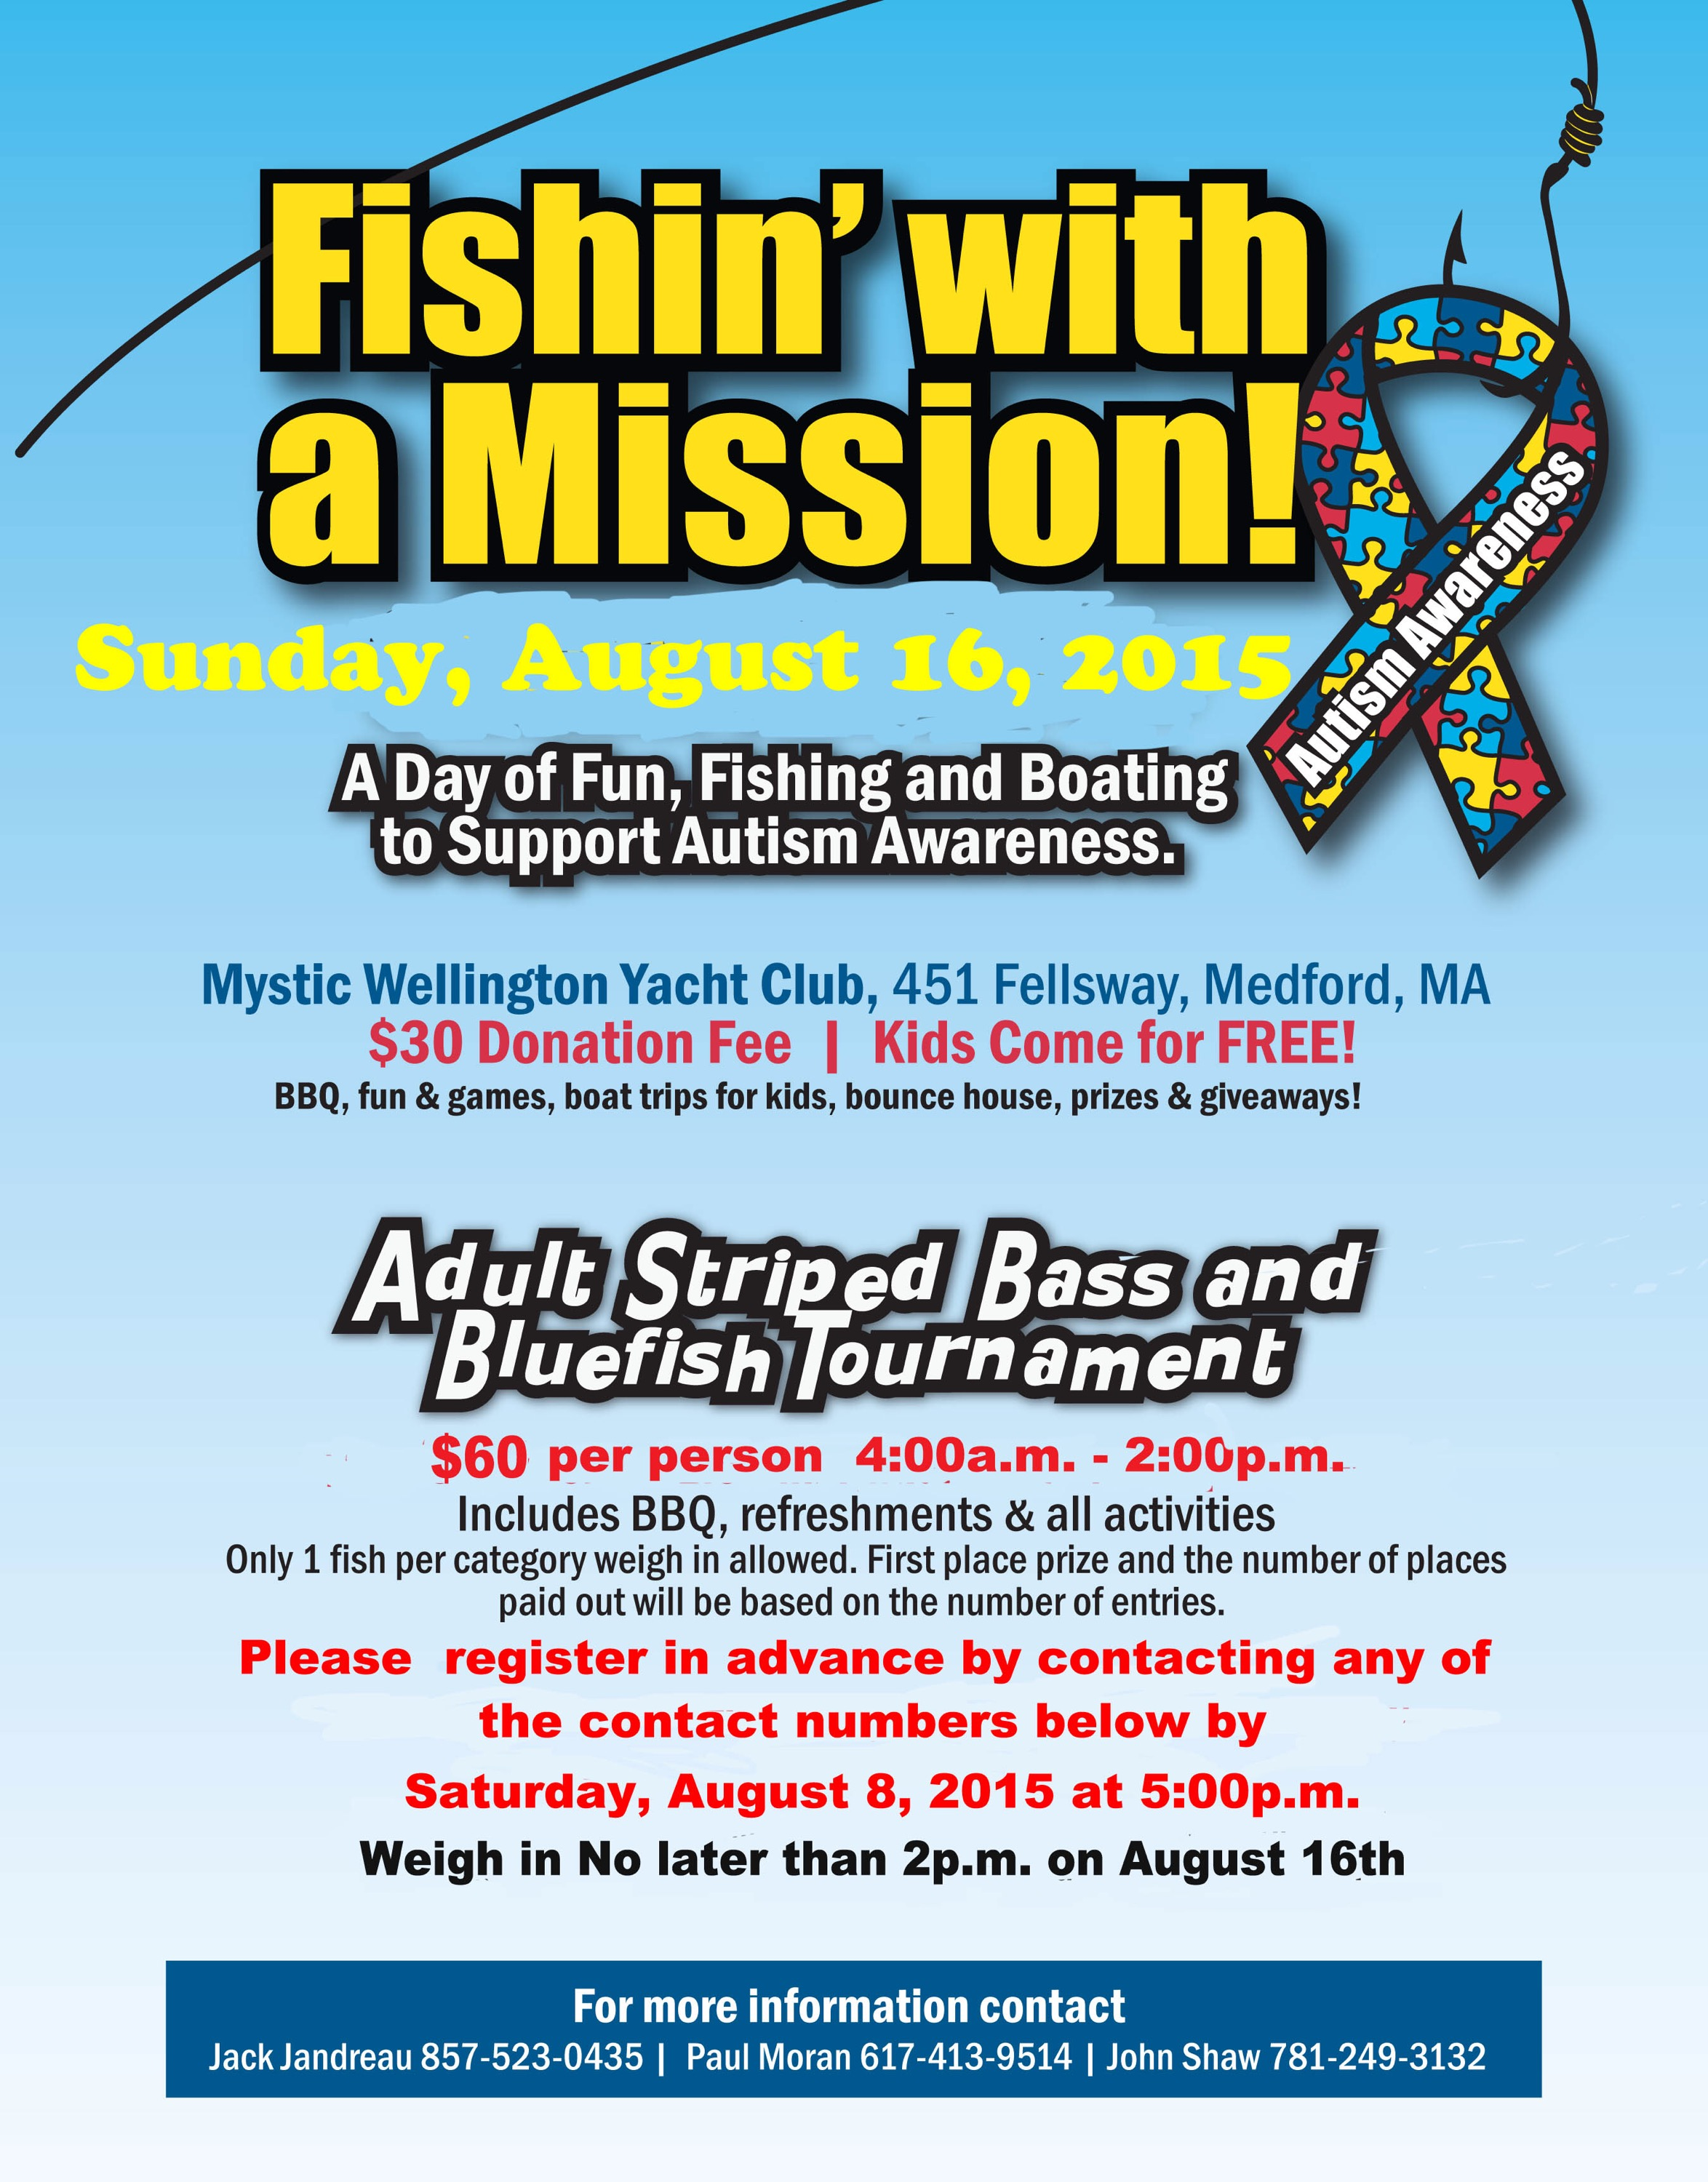 MWYC Fishin With A Mission Event The Somerville News